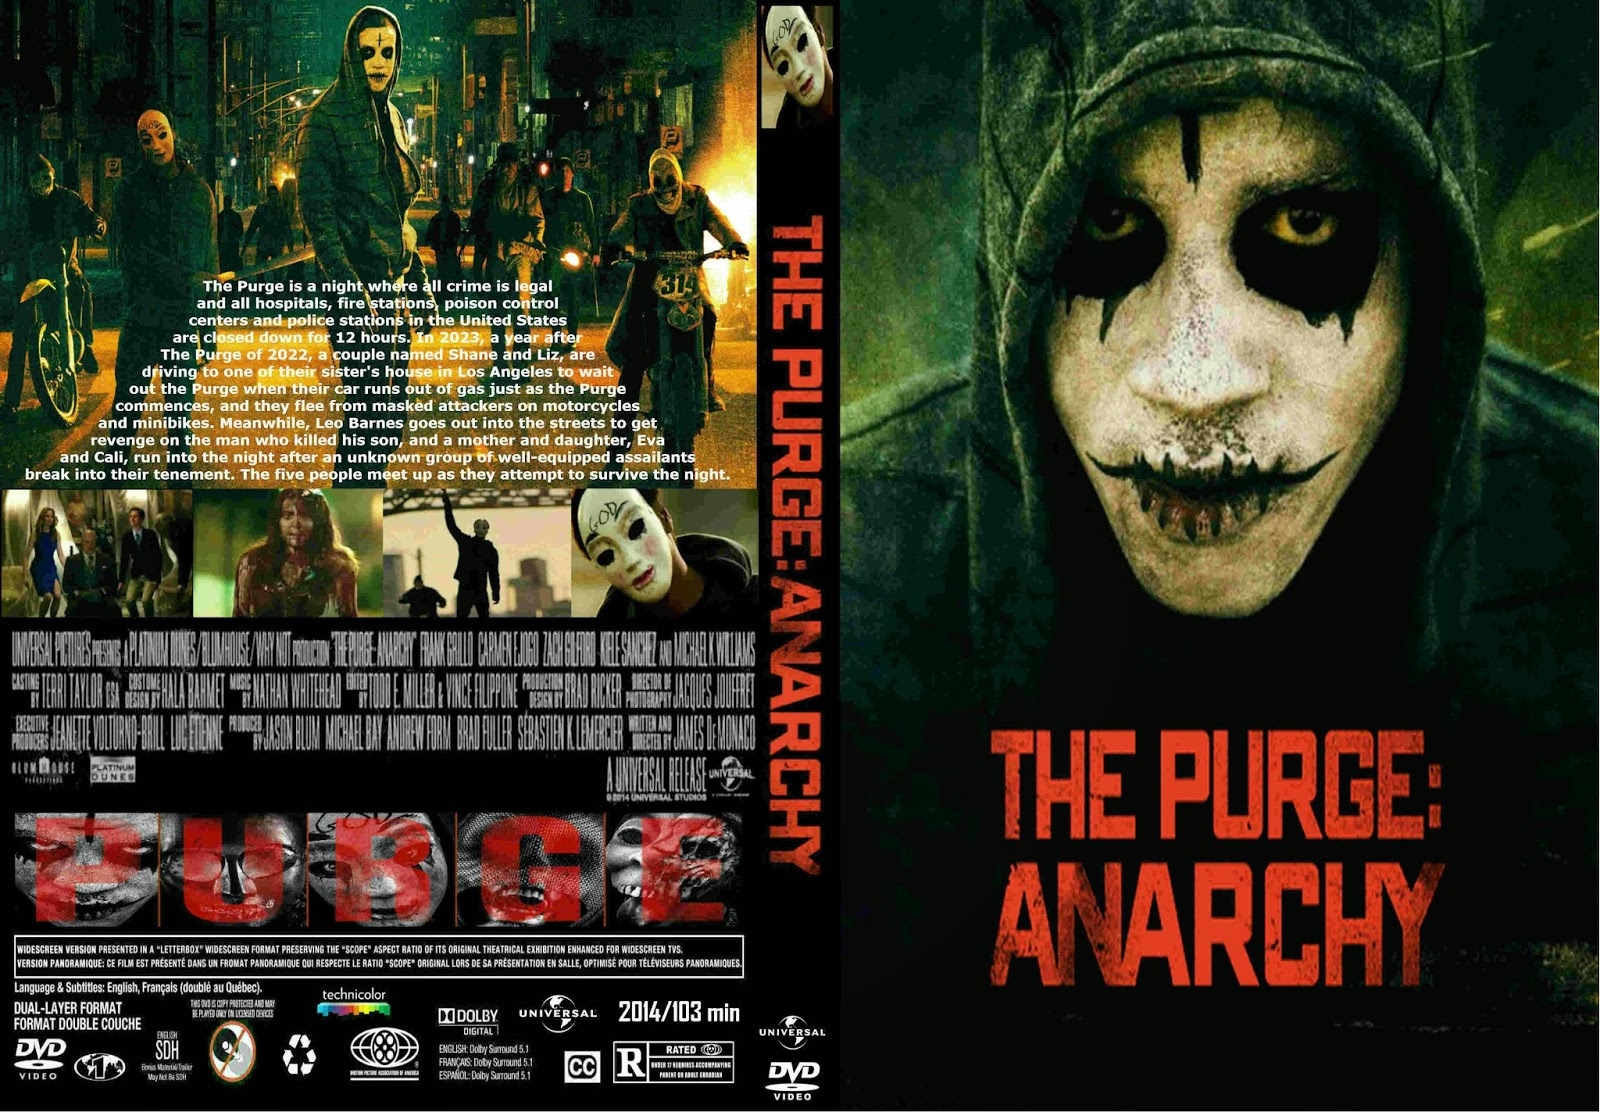 Quotes From The Purge Quotes From The Purge Anarchy  Best Quote 2018